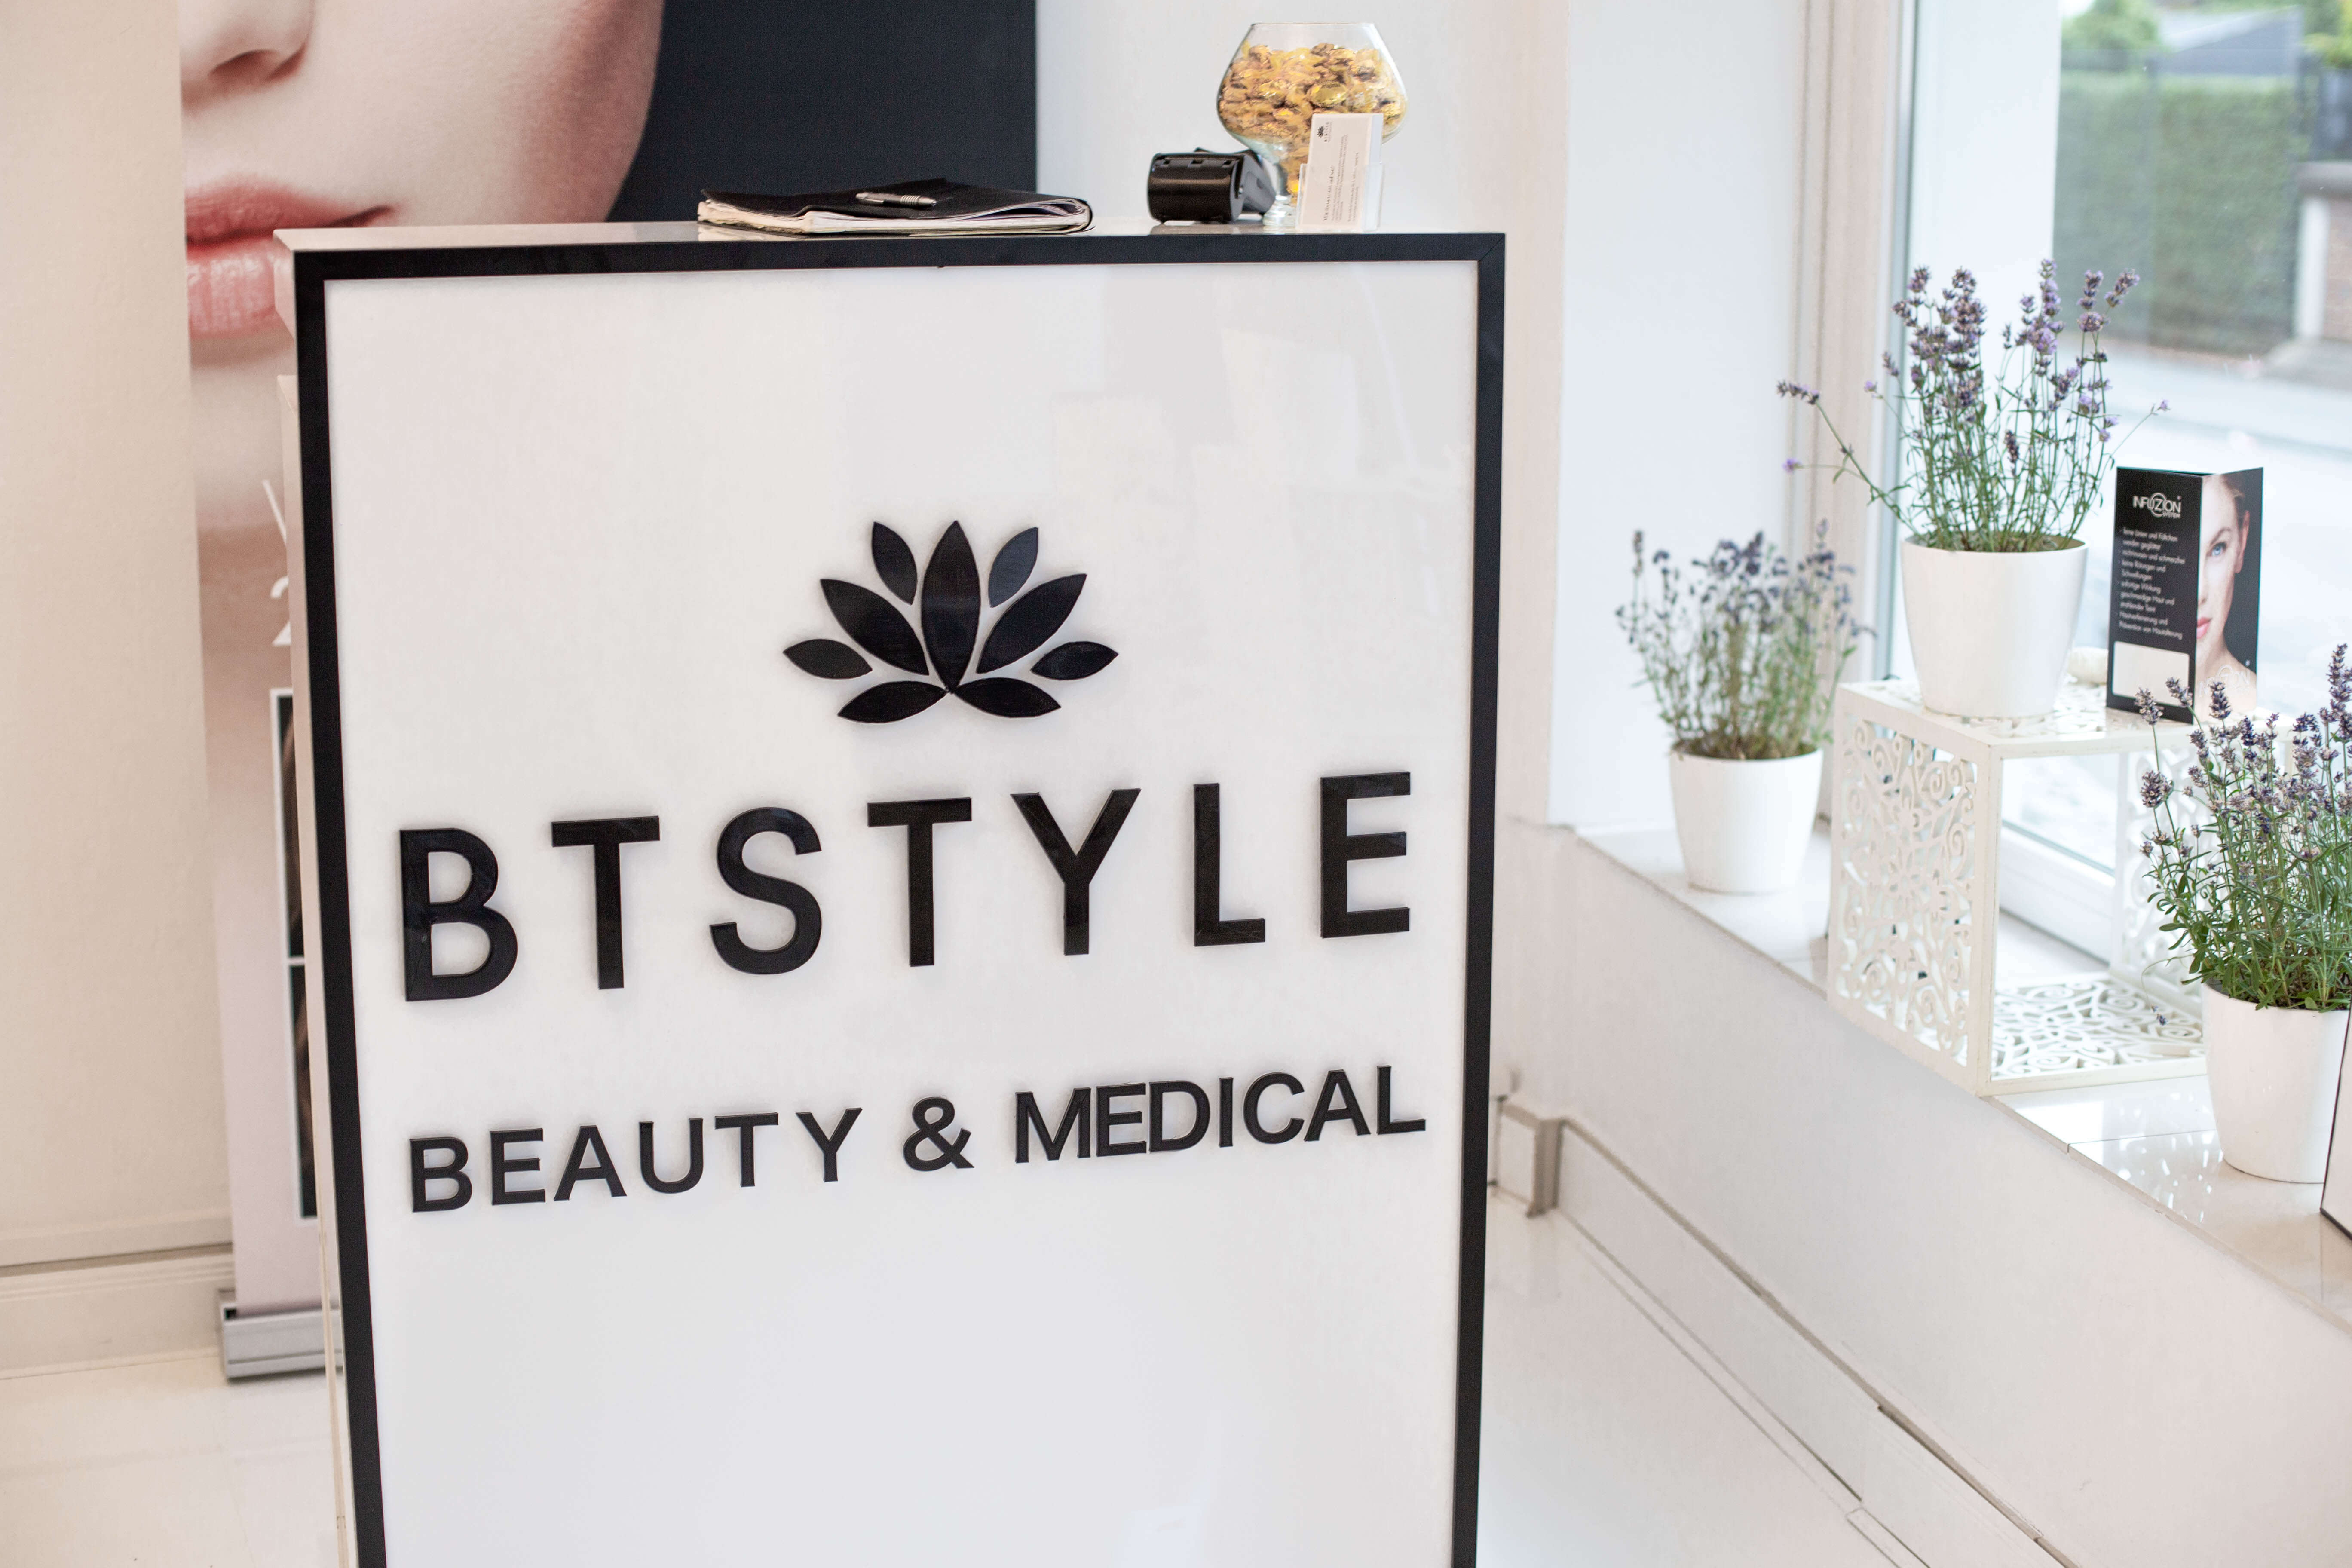 beauty-behandlung-bonn-btstyle